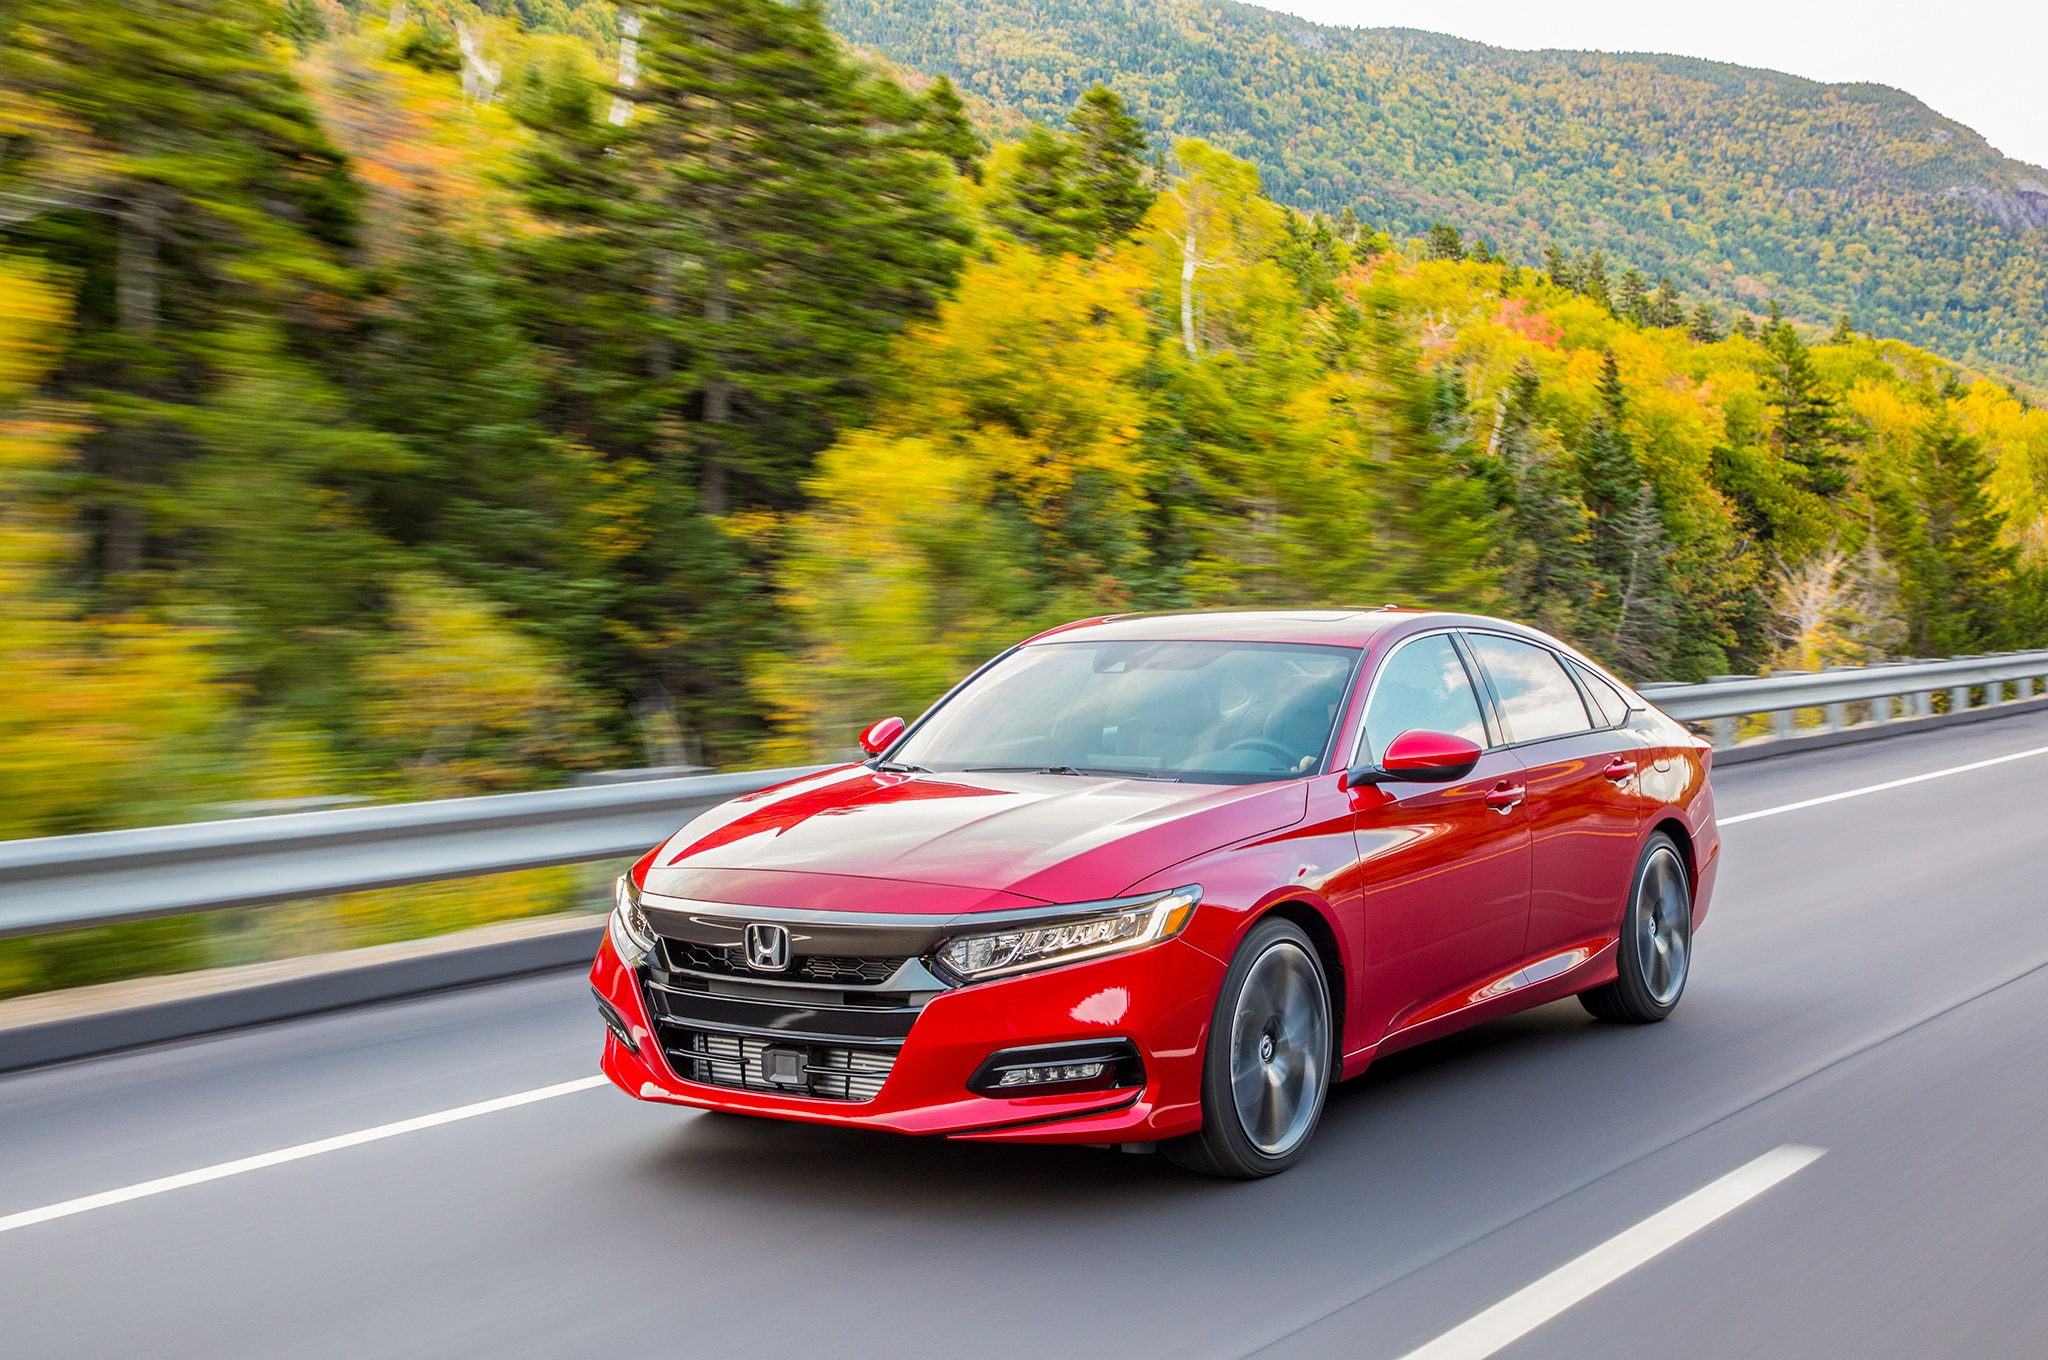 2018 Honda Accord Sport 2 0T Front Three Quarter In Motion 13